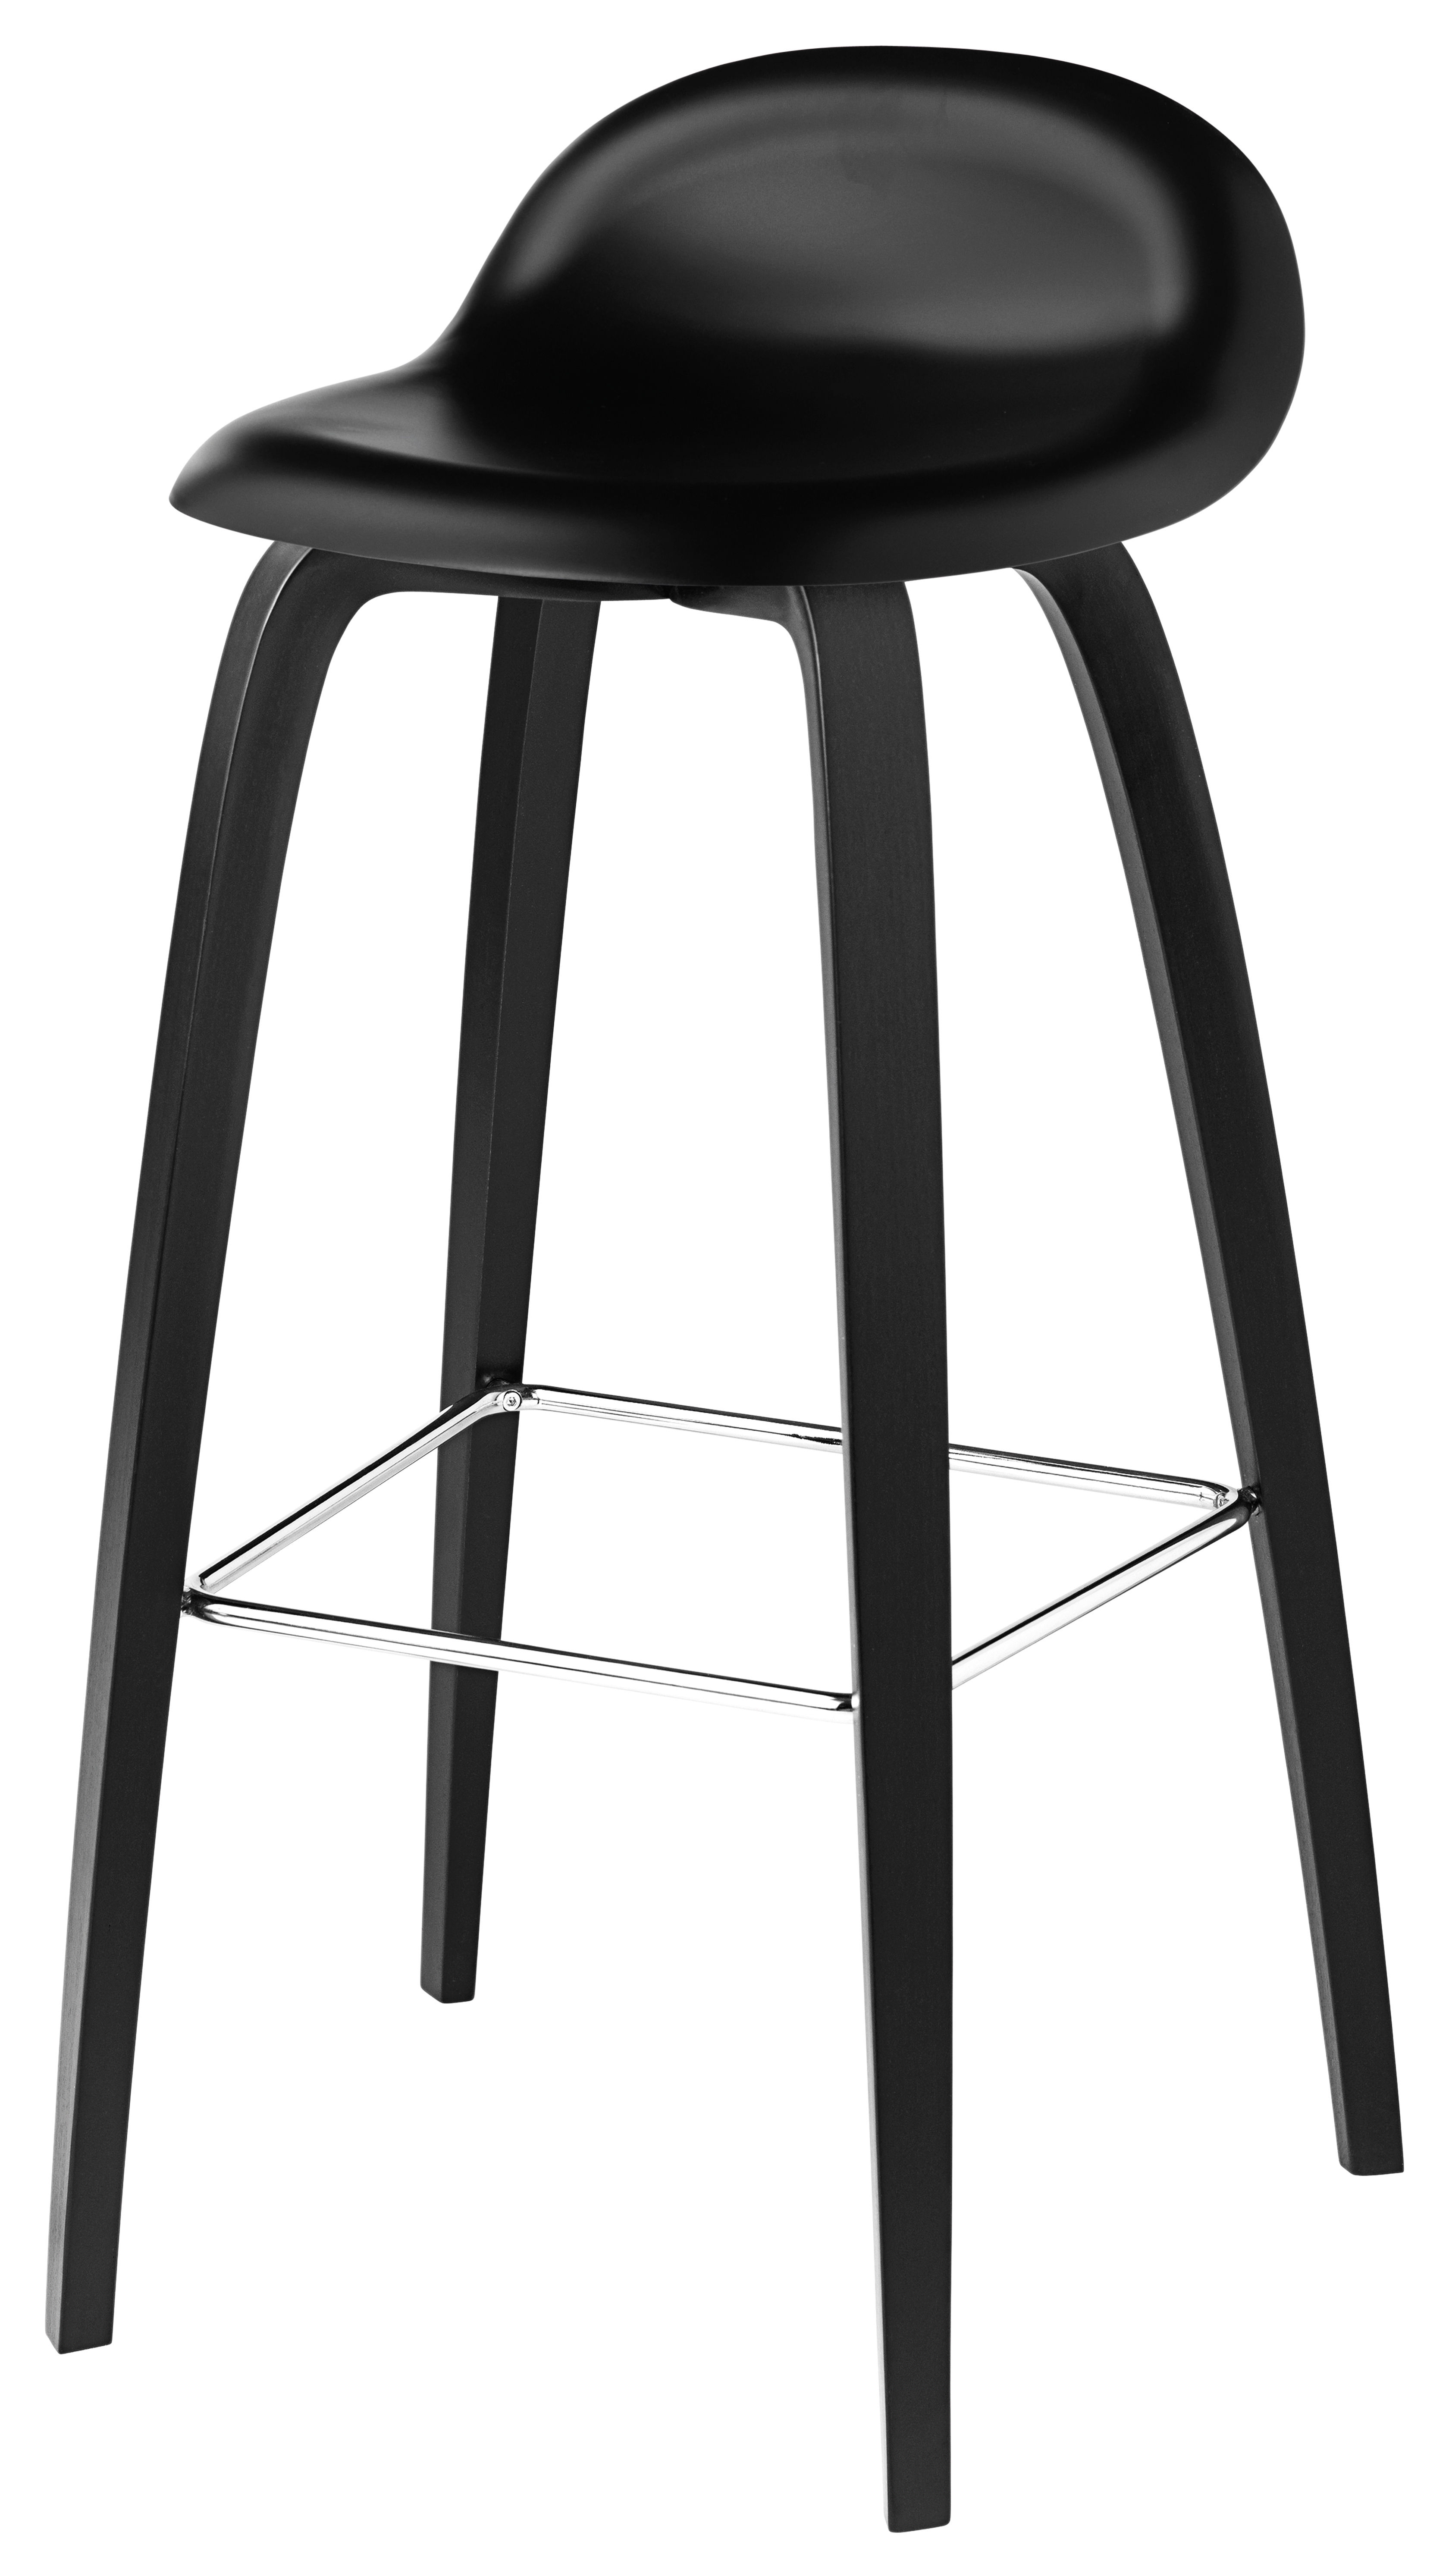 Furniture - Bar Stools - 3D Bar stool - H 74 cm -Plastic shell & 4 wood legs by Gubi - Black - Painted wood, Polymer